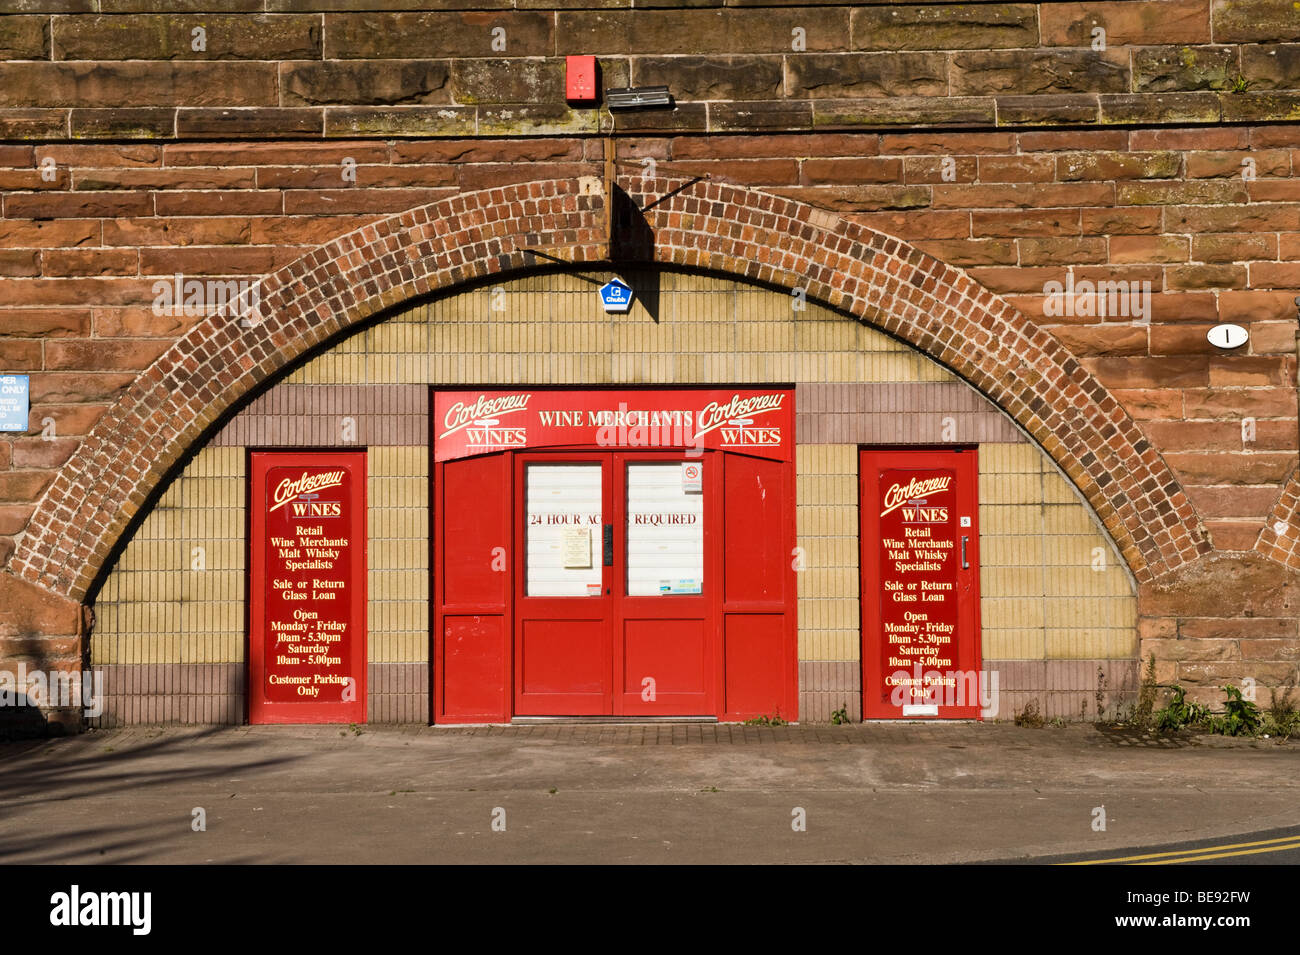 Wine retail shop located in railway arches in England's most northerly city Carlisle, Cumbria, uk - Stock Image